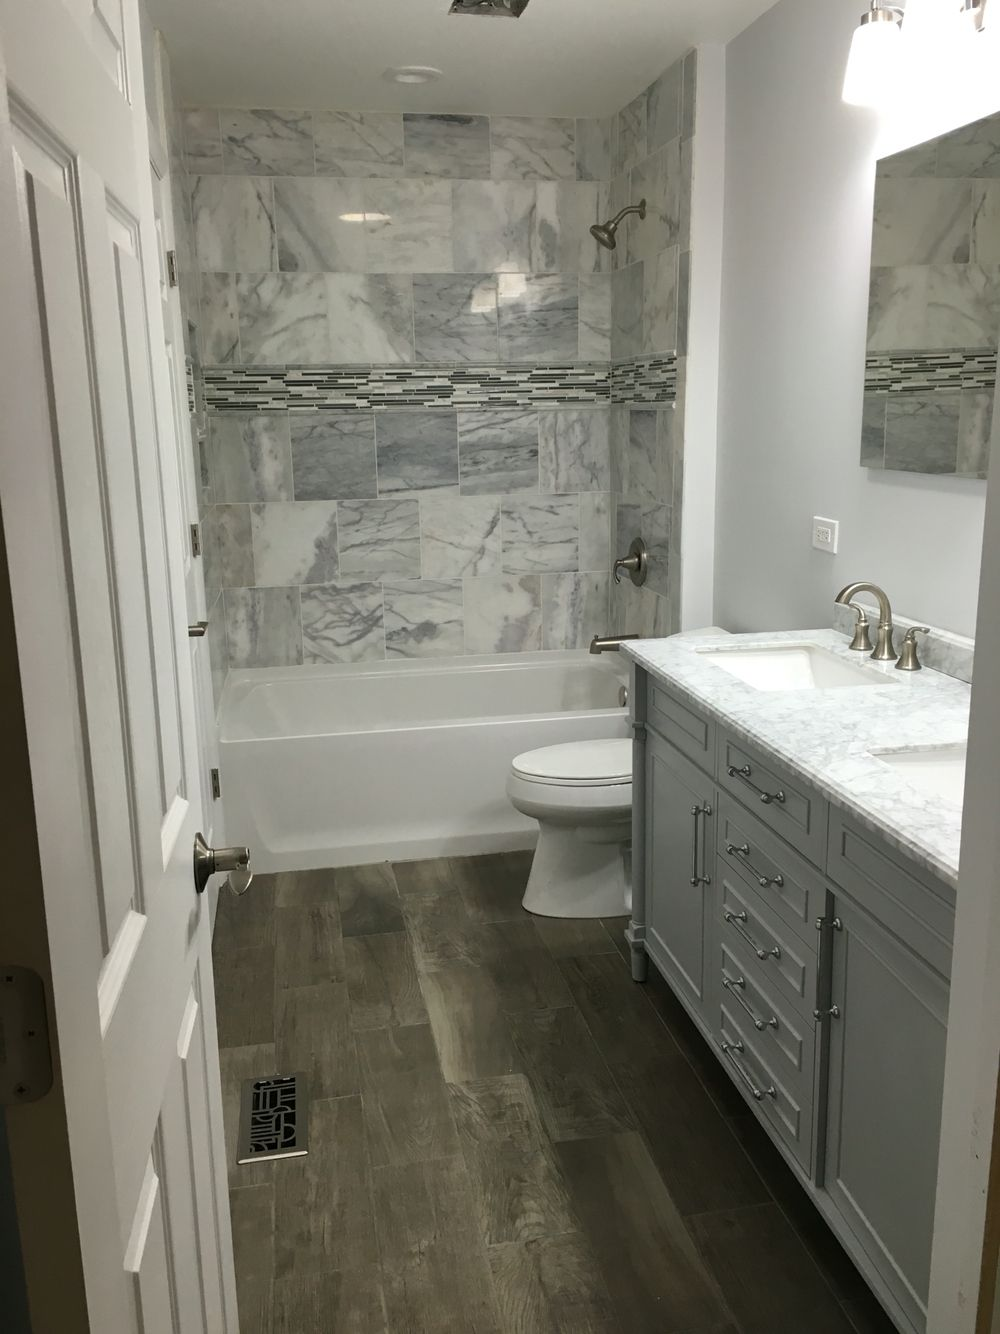 Bathroom Remodel Bath Works Pinterest Bath House And House Remodeling